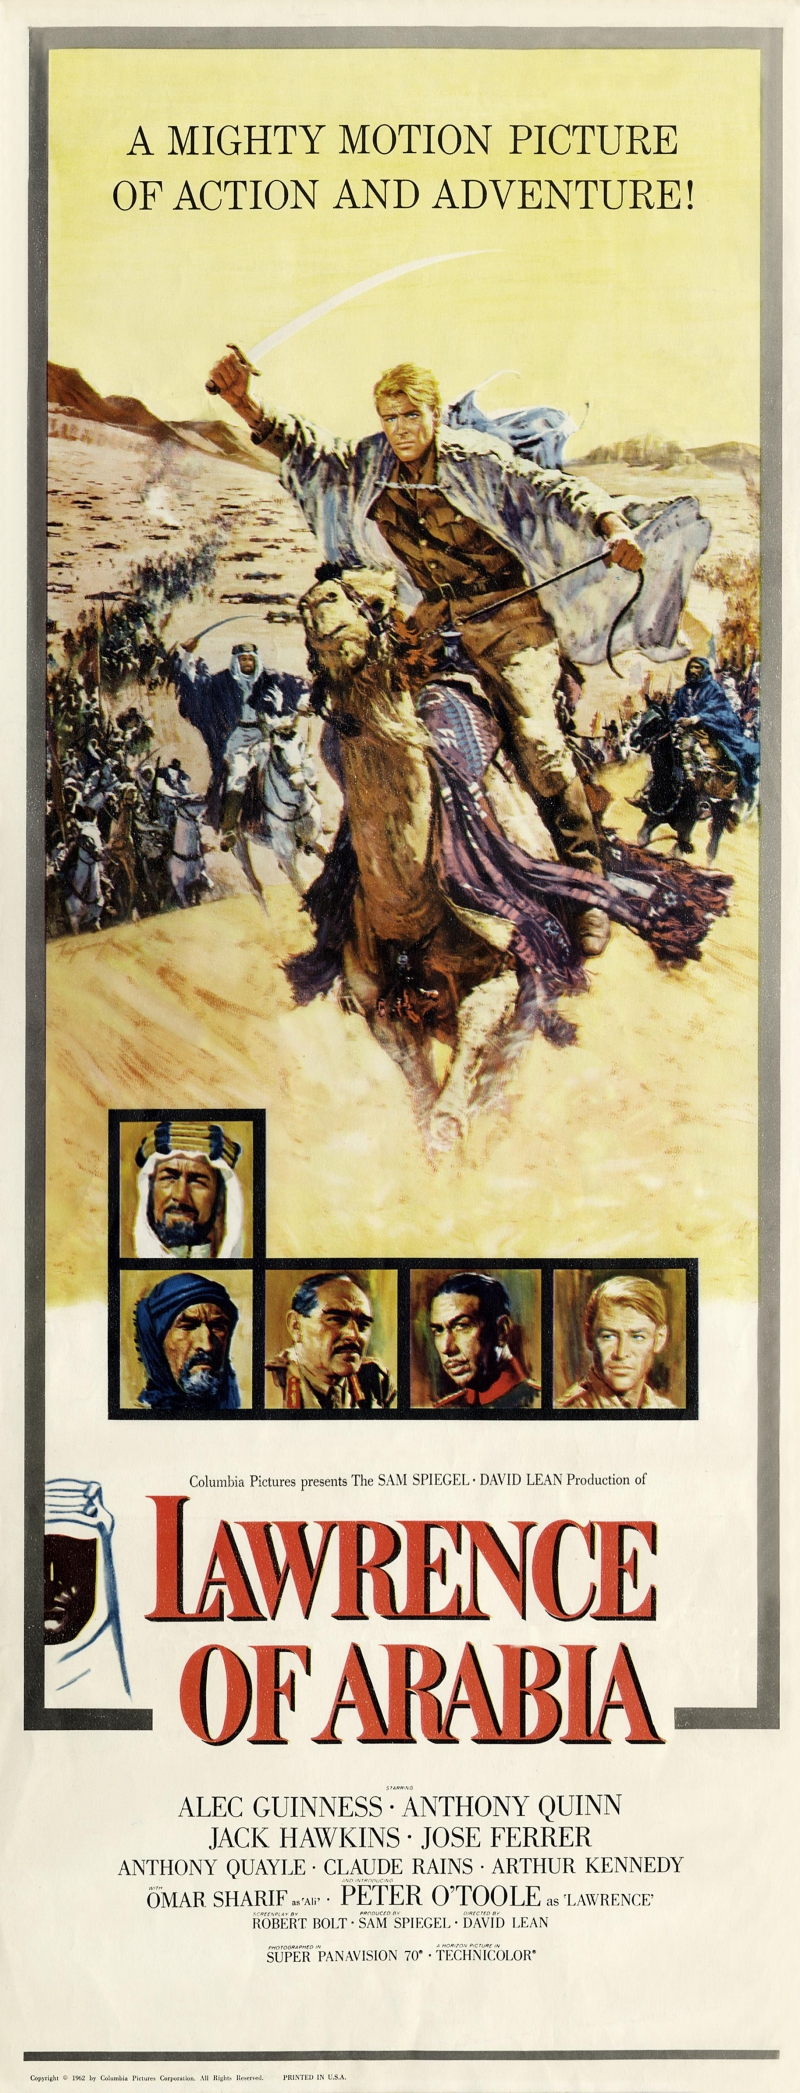 review of lawrence of arabia essay Review of lawrence of arabia essays the movie lawrence of arabia had many interesting aspects about it and, according to sources, is very historically accurate.